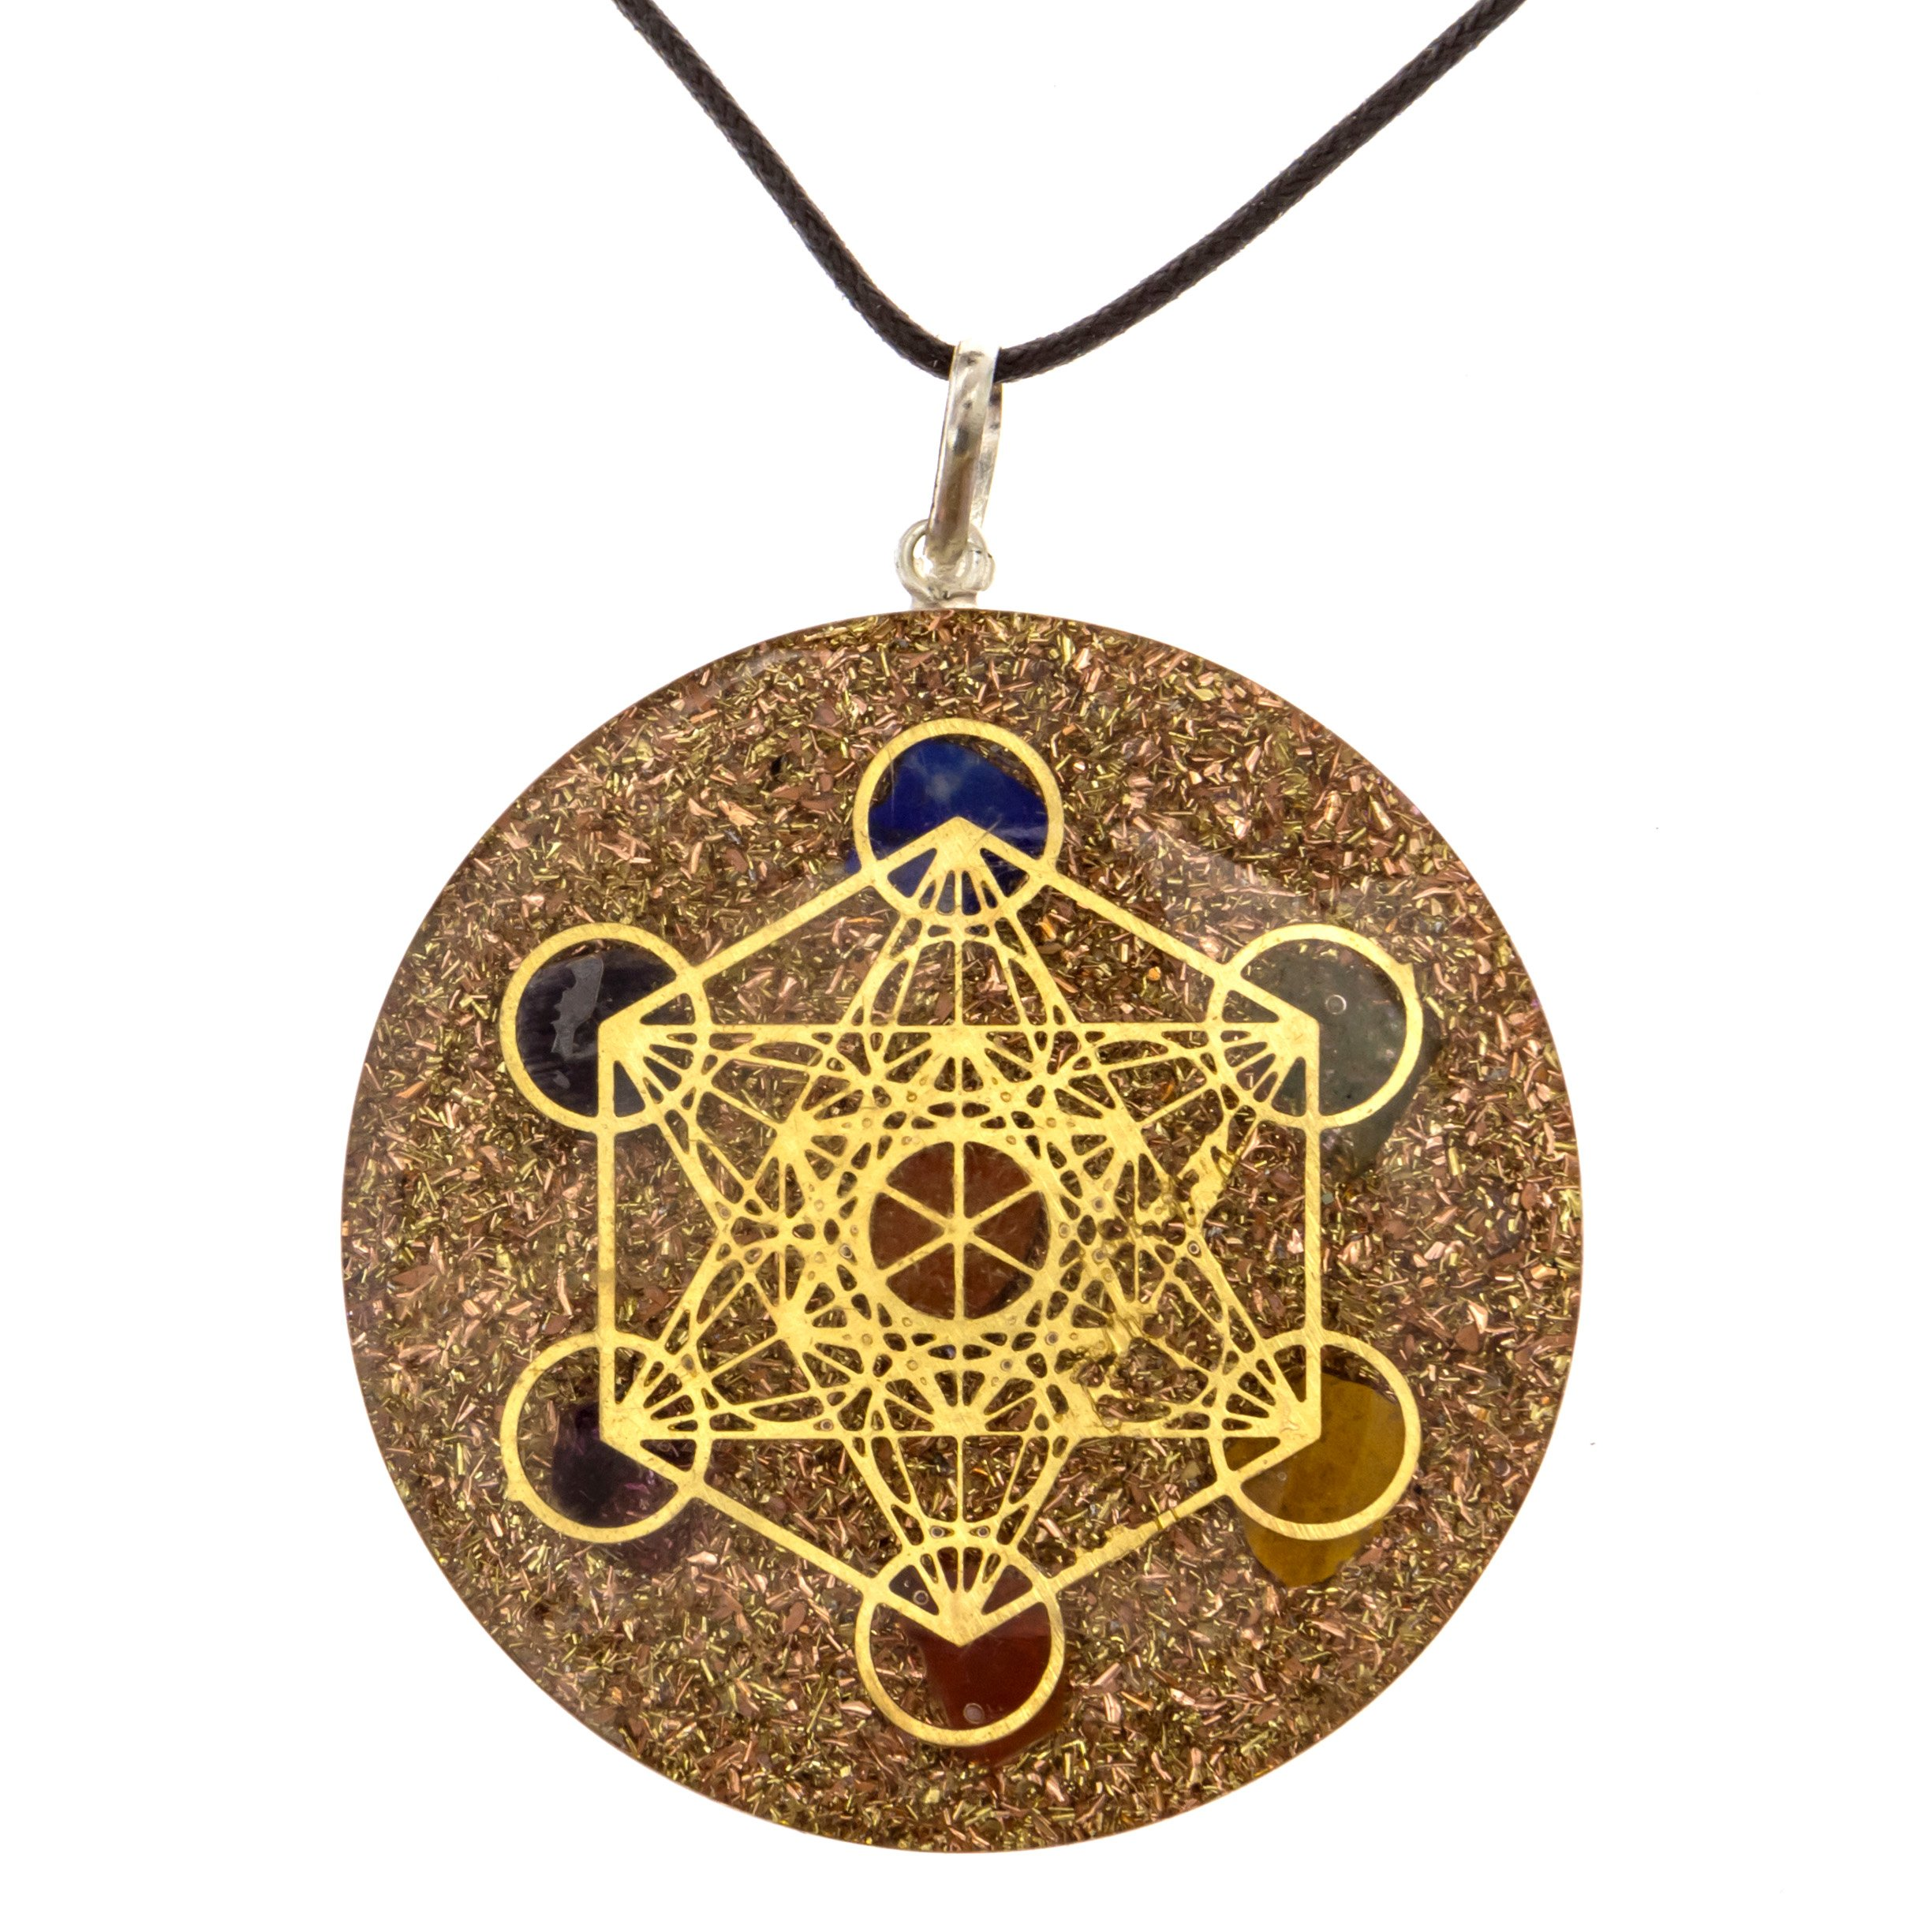 Orgone Metatron's Cube Merkaba Seven Chakras with Crystal Stones Orgone Pendant | Orgonite Pendant for Sale, Protection, Reiki, Powerful